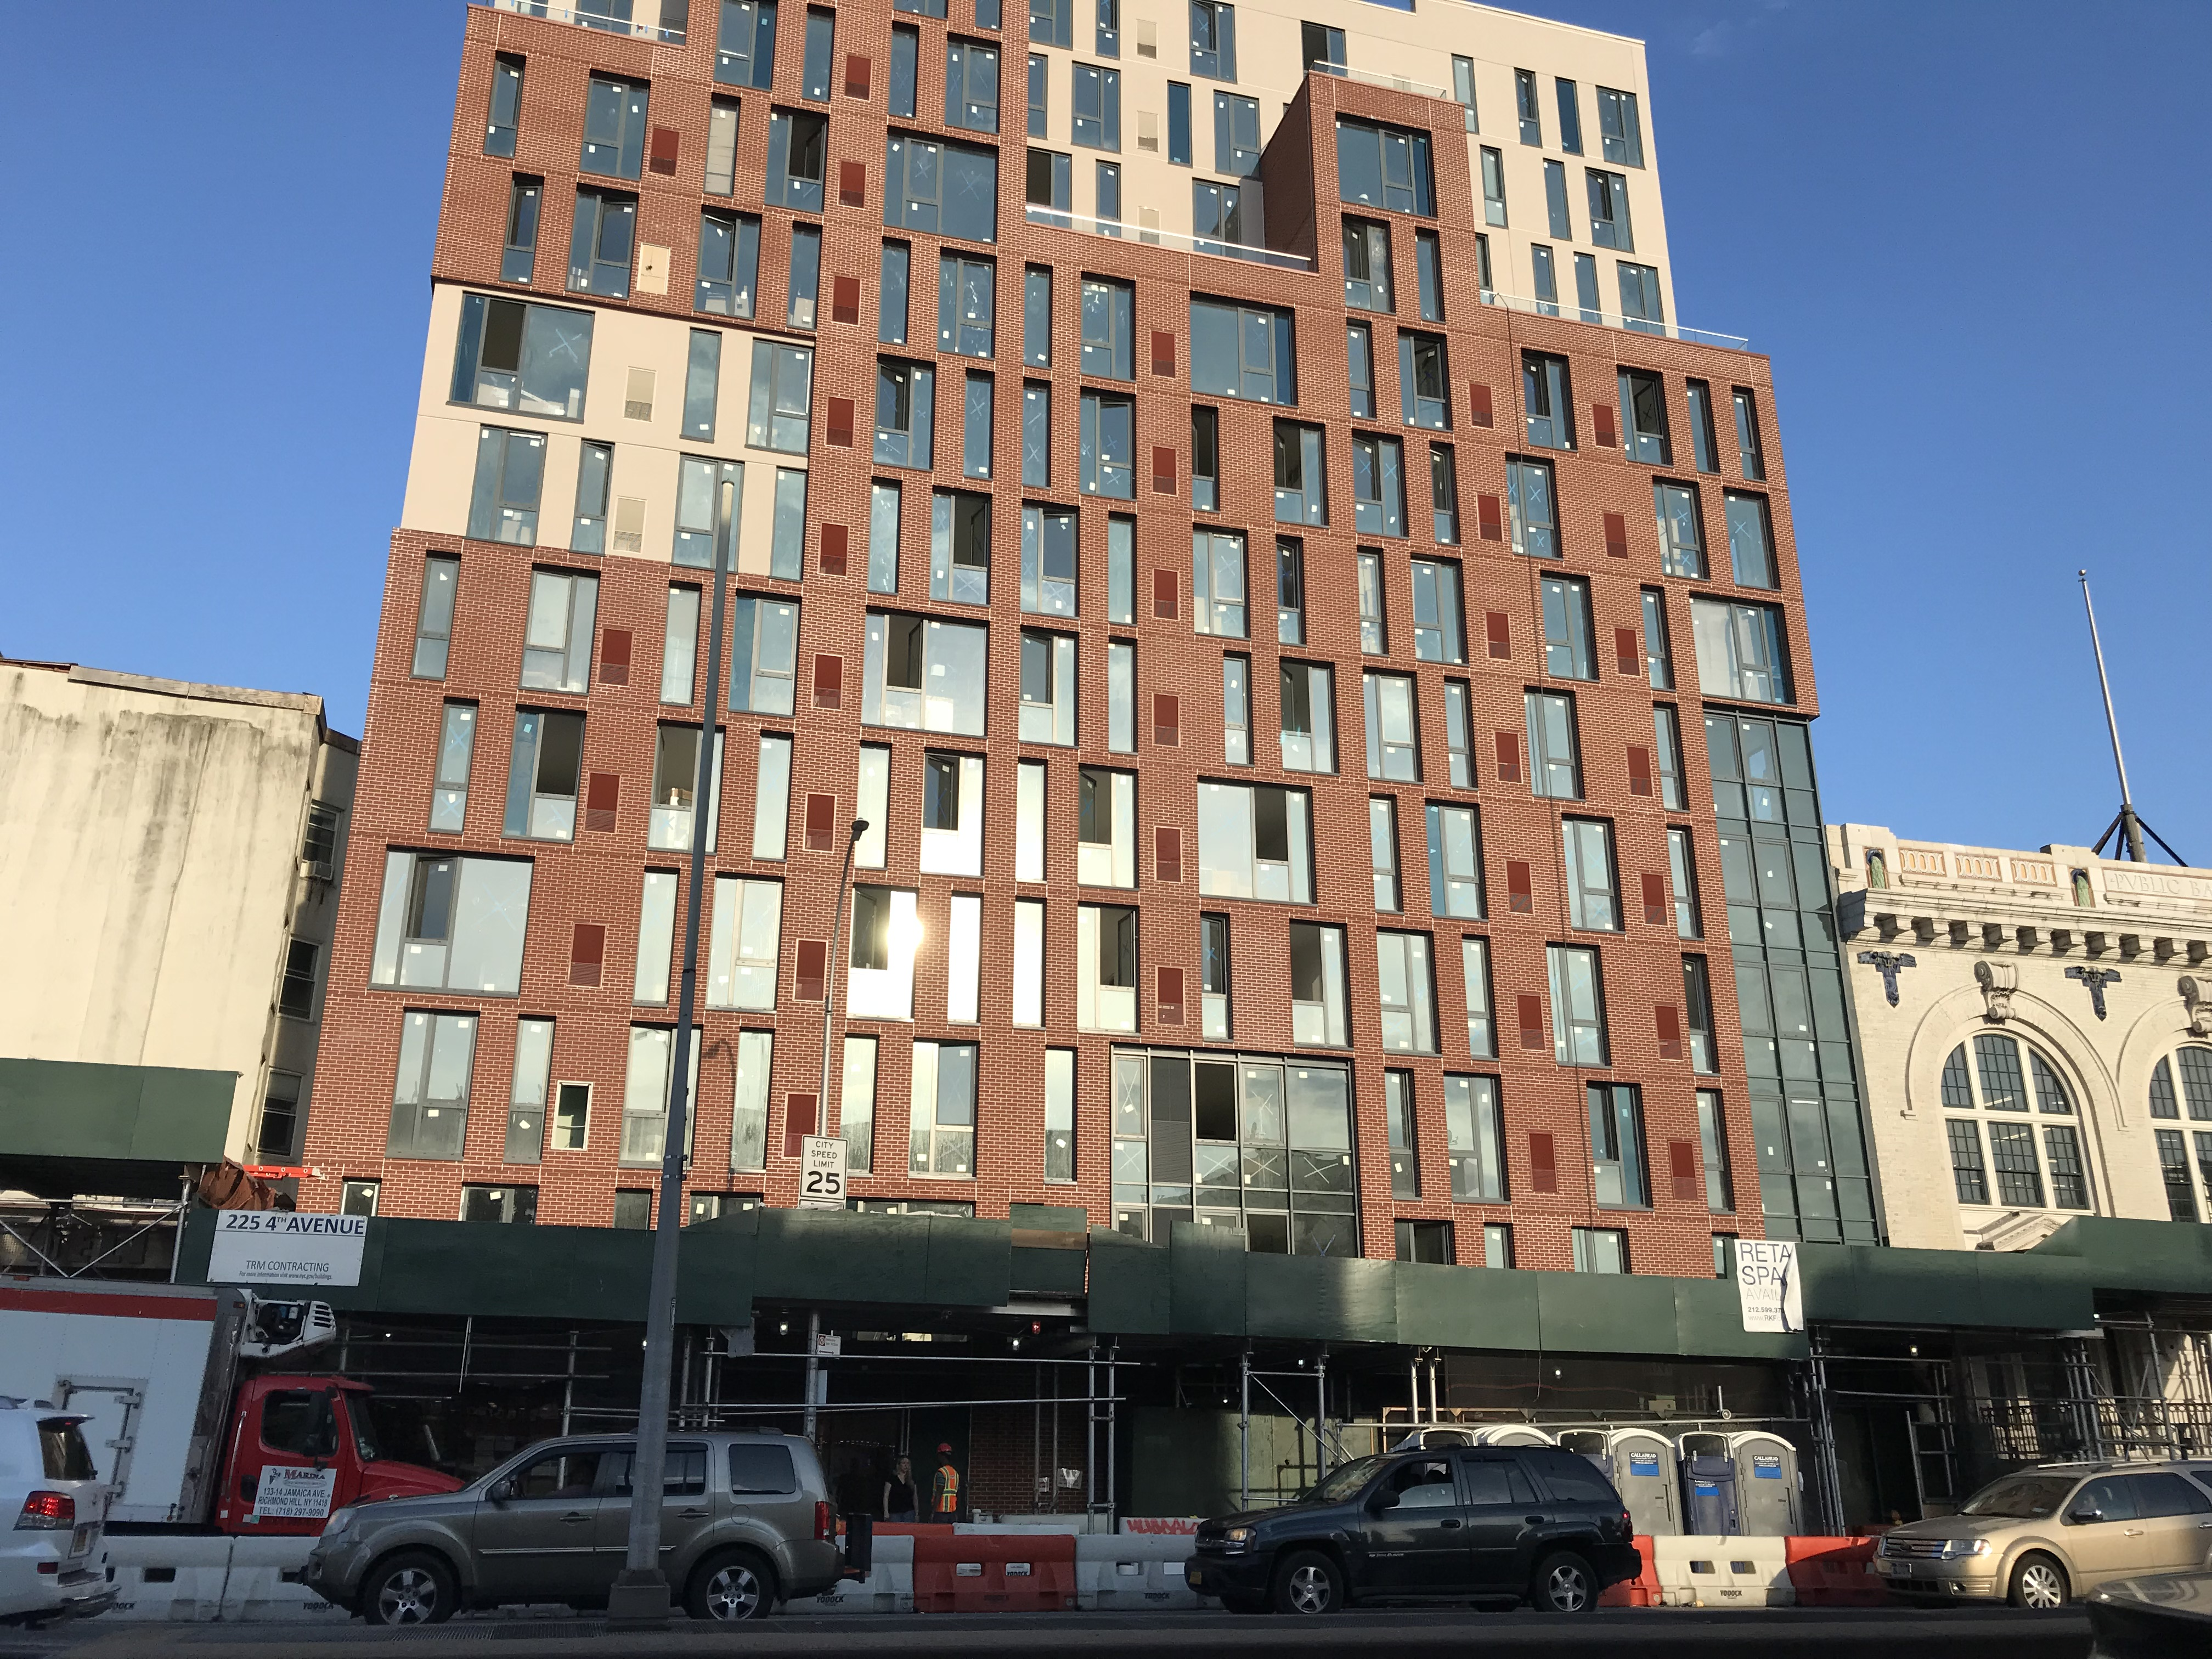 dfd0d9ebe90 Starbucks Opening At 4th Avenue & Union In Park Slope - BKLYNER